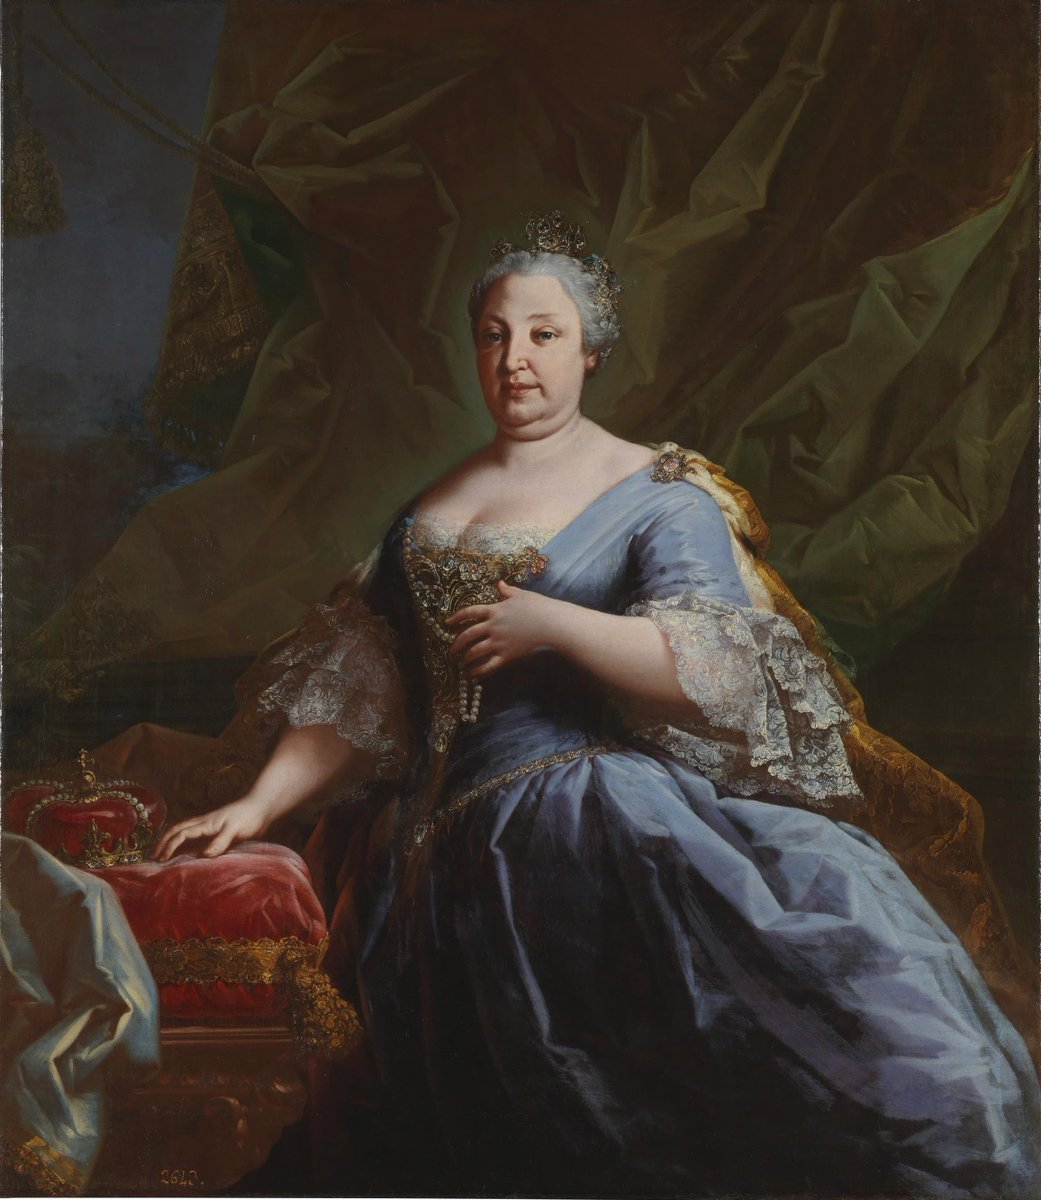 Born #OnThisDay in 1711: #BarbaraofPortugal (1711-58), Queen of Spain as spouse of #FerdinandoVI   Portrait by an Unknown Artist, ca. 1750   #Braganza #Bourbon